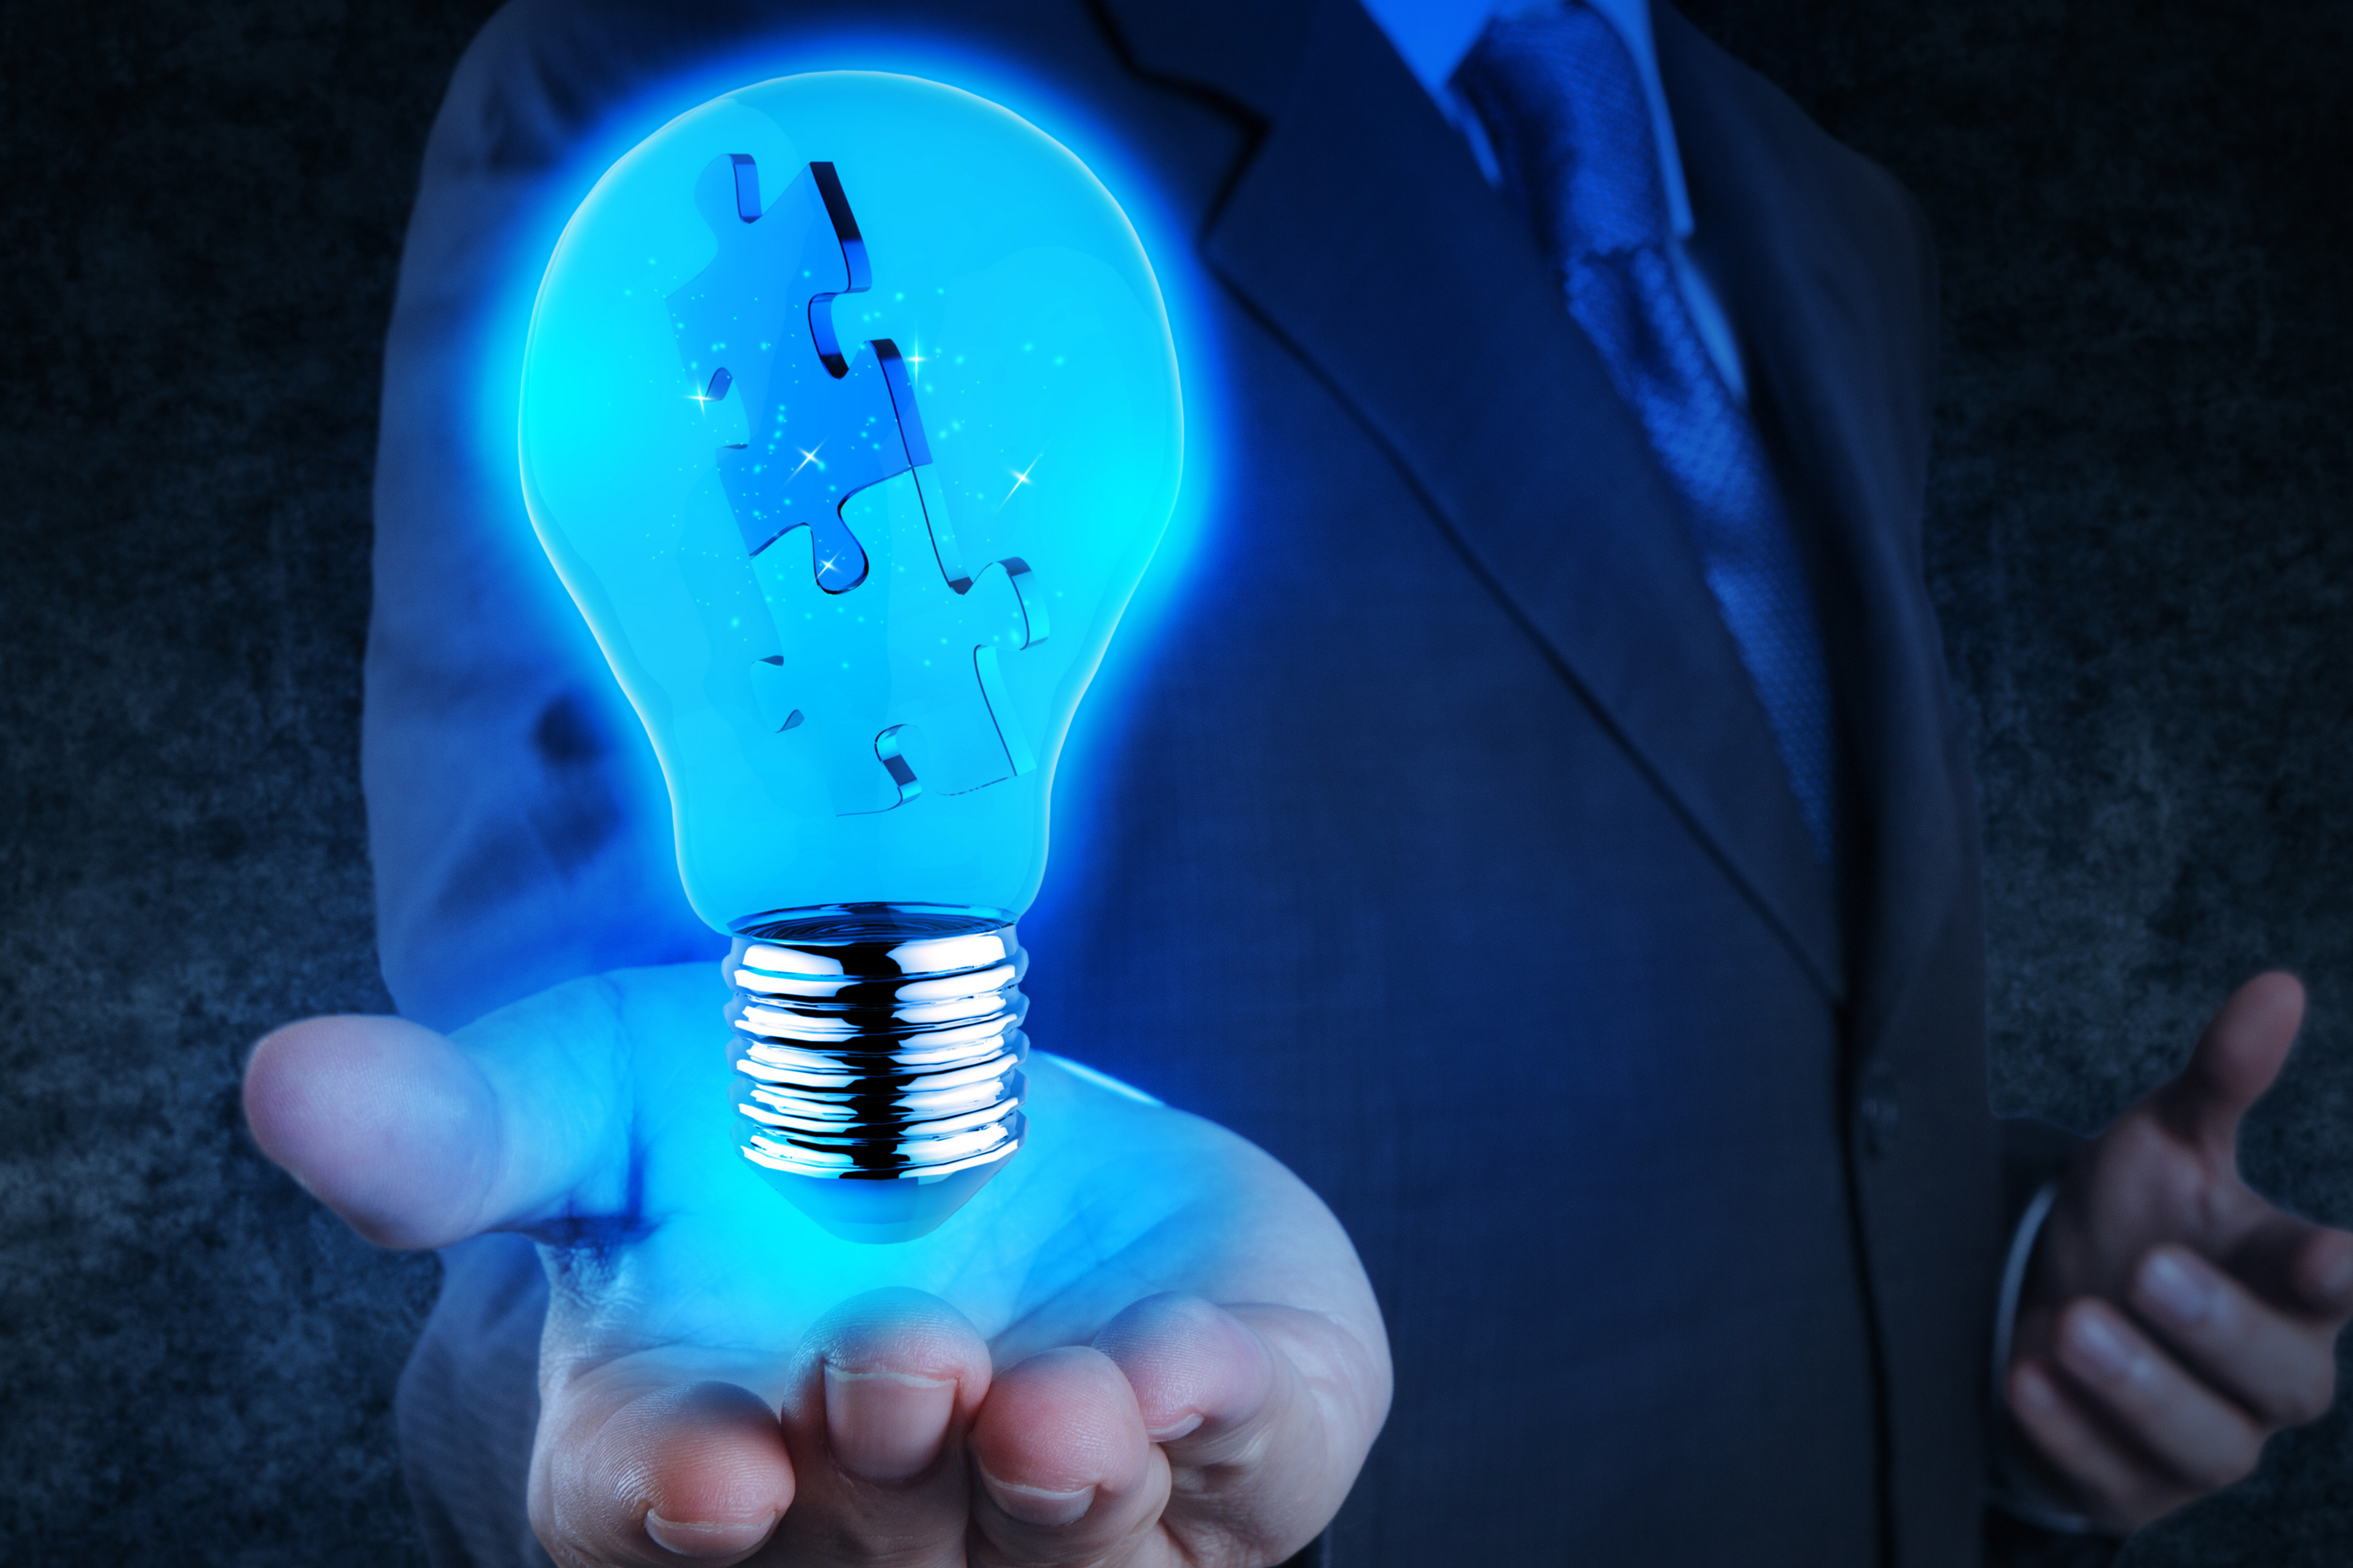 How focus on energy use can cut costs. Photo: Shutterstock